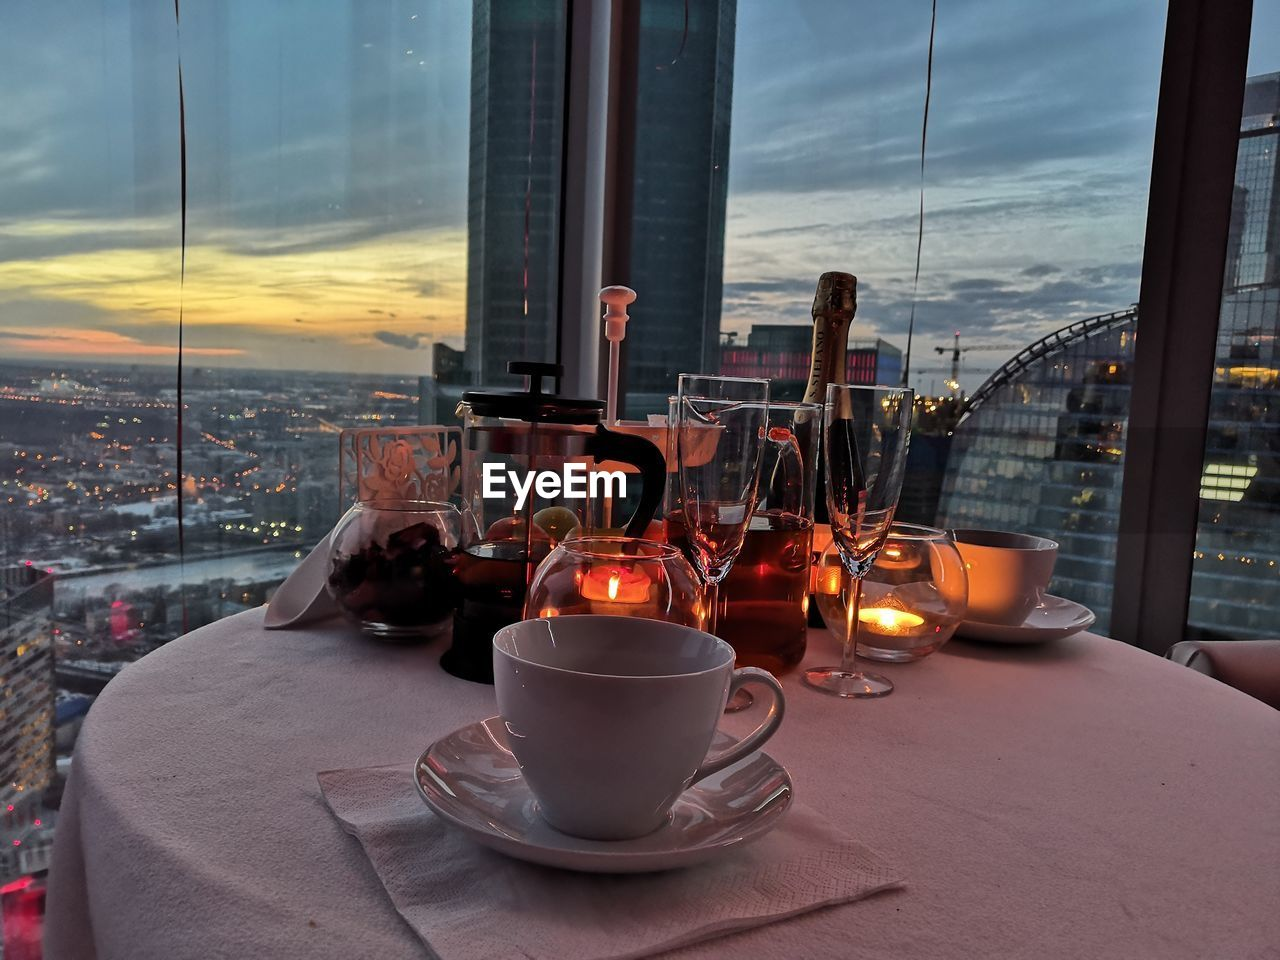 food and drink, table, drink, cup, transparent, window, architecture, indoors, glass - material, sky, city, saucer, refreshment, mug, nature, restaurant, cityscape, business, no people, crockery, glass